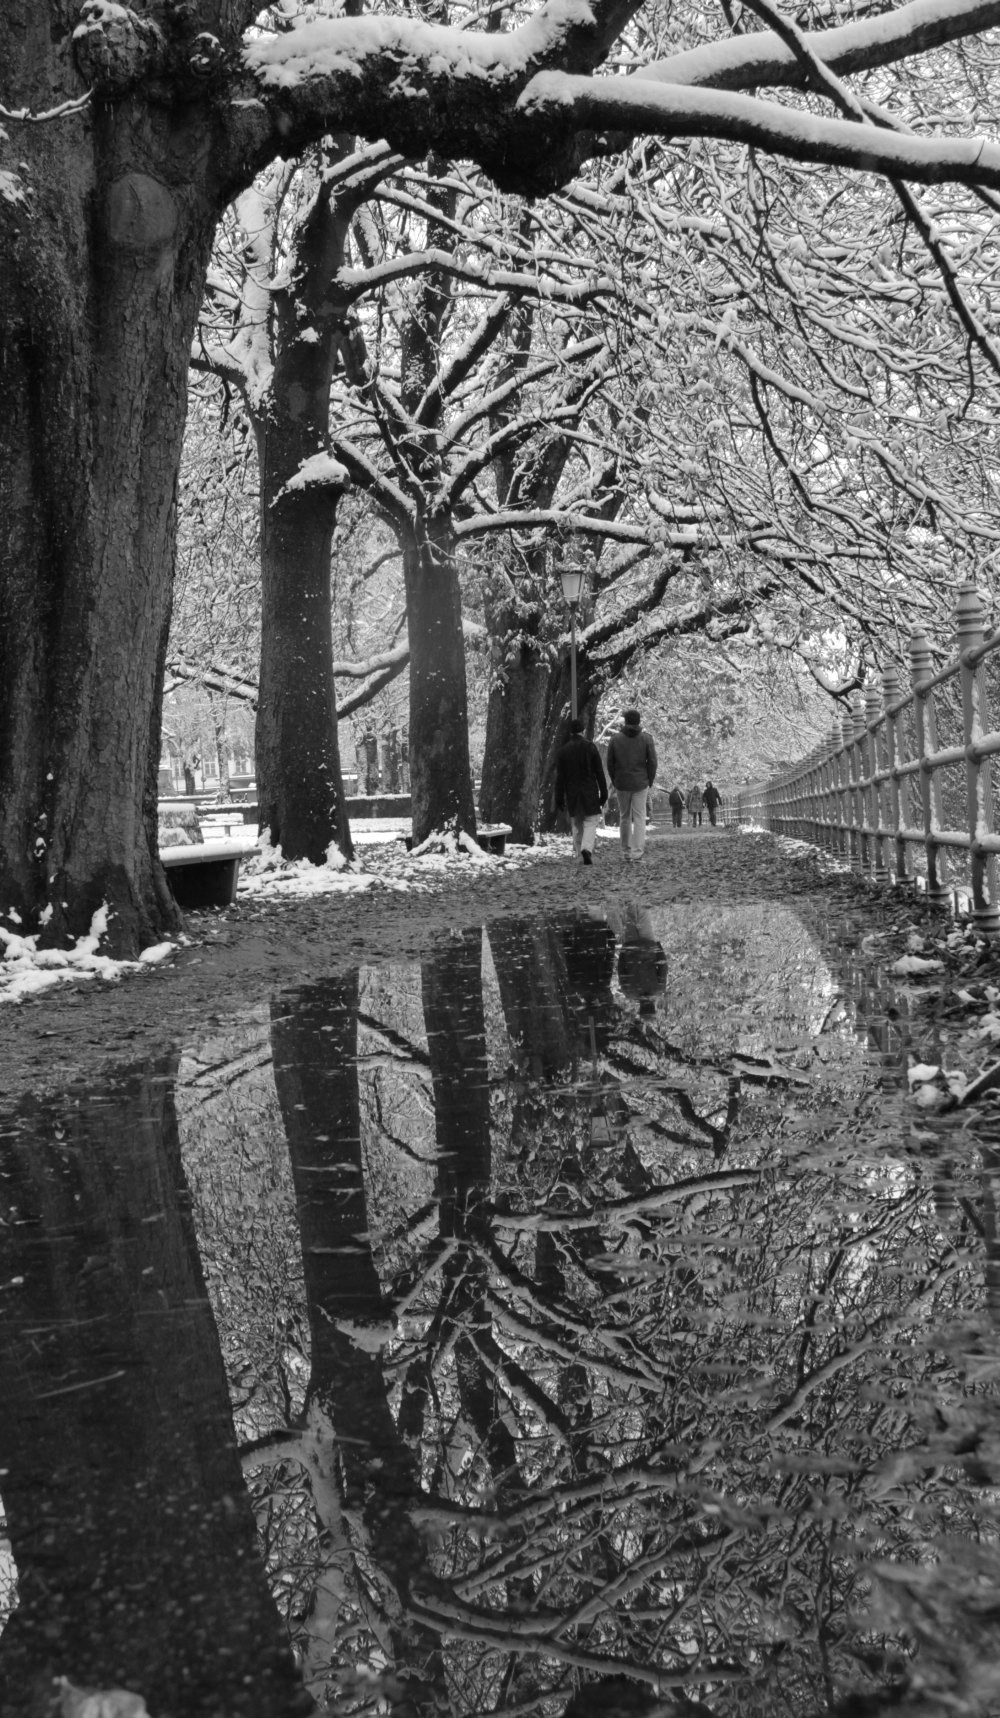 The trees along the Isar river covered with snow, Munich, Germany. Image©Maximilian Von Stetten